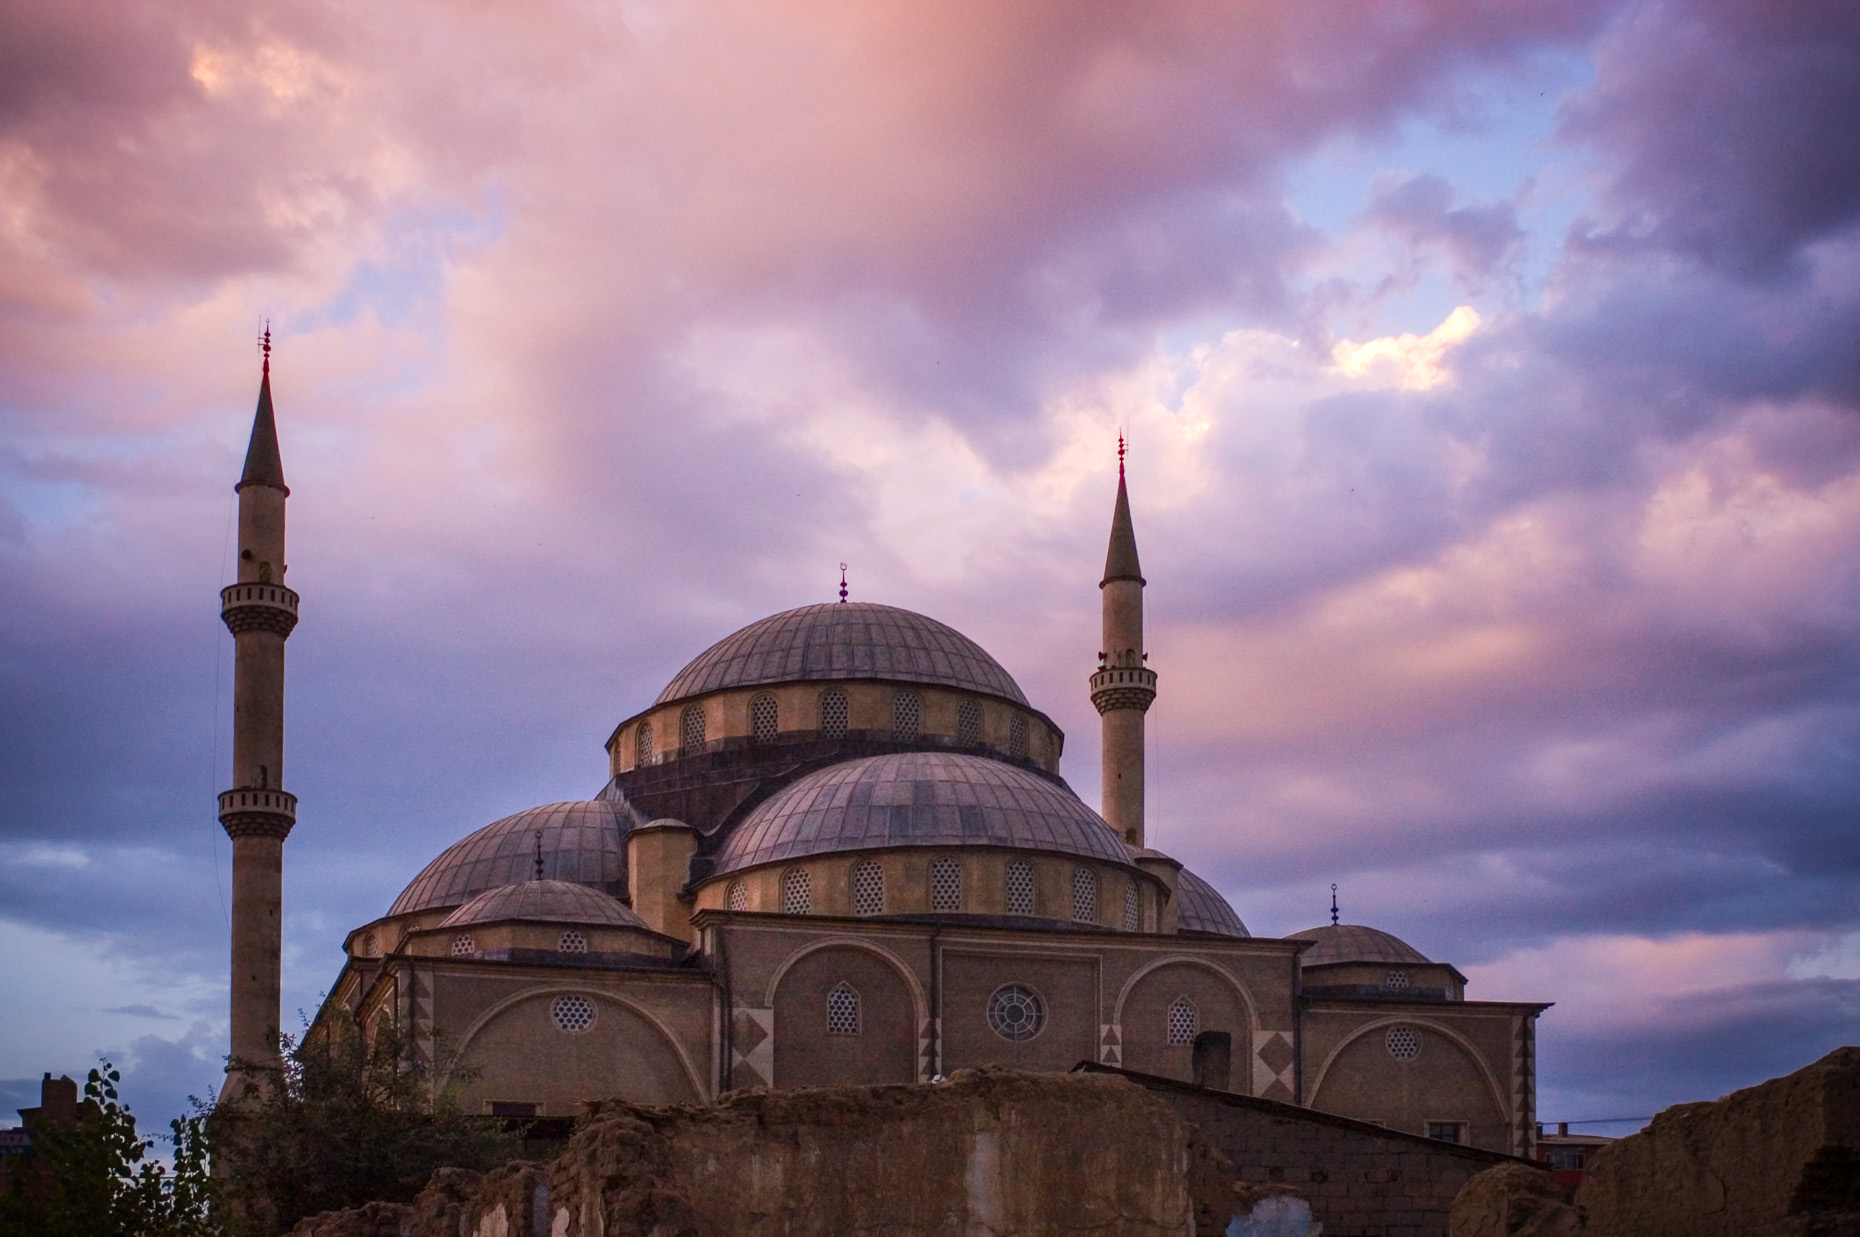 Image of Muslim mosque and minarets in Van Turkey at sunset.